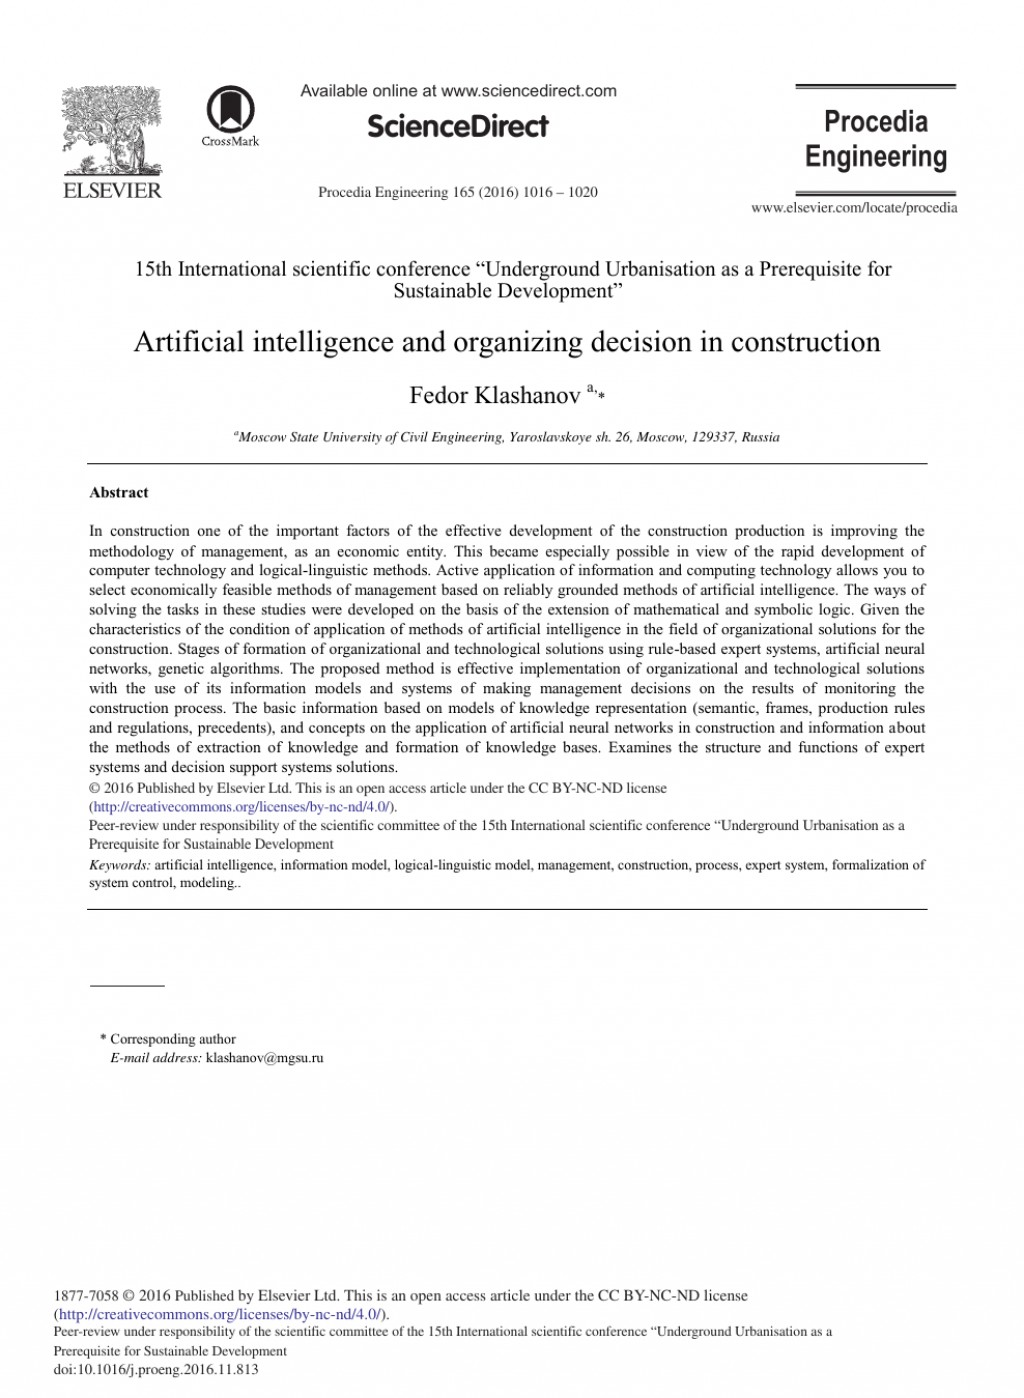 005 Artificial Intelligence Research Paper Phenomenal Ieee Ideas Topics Large